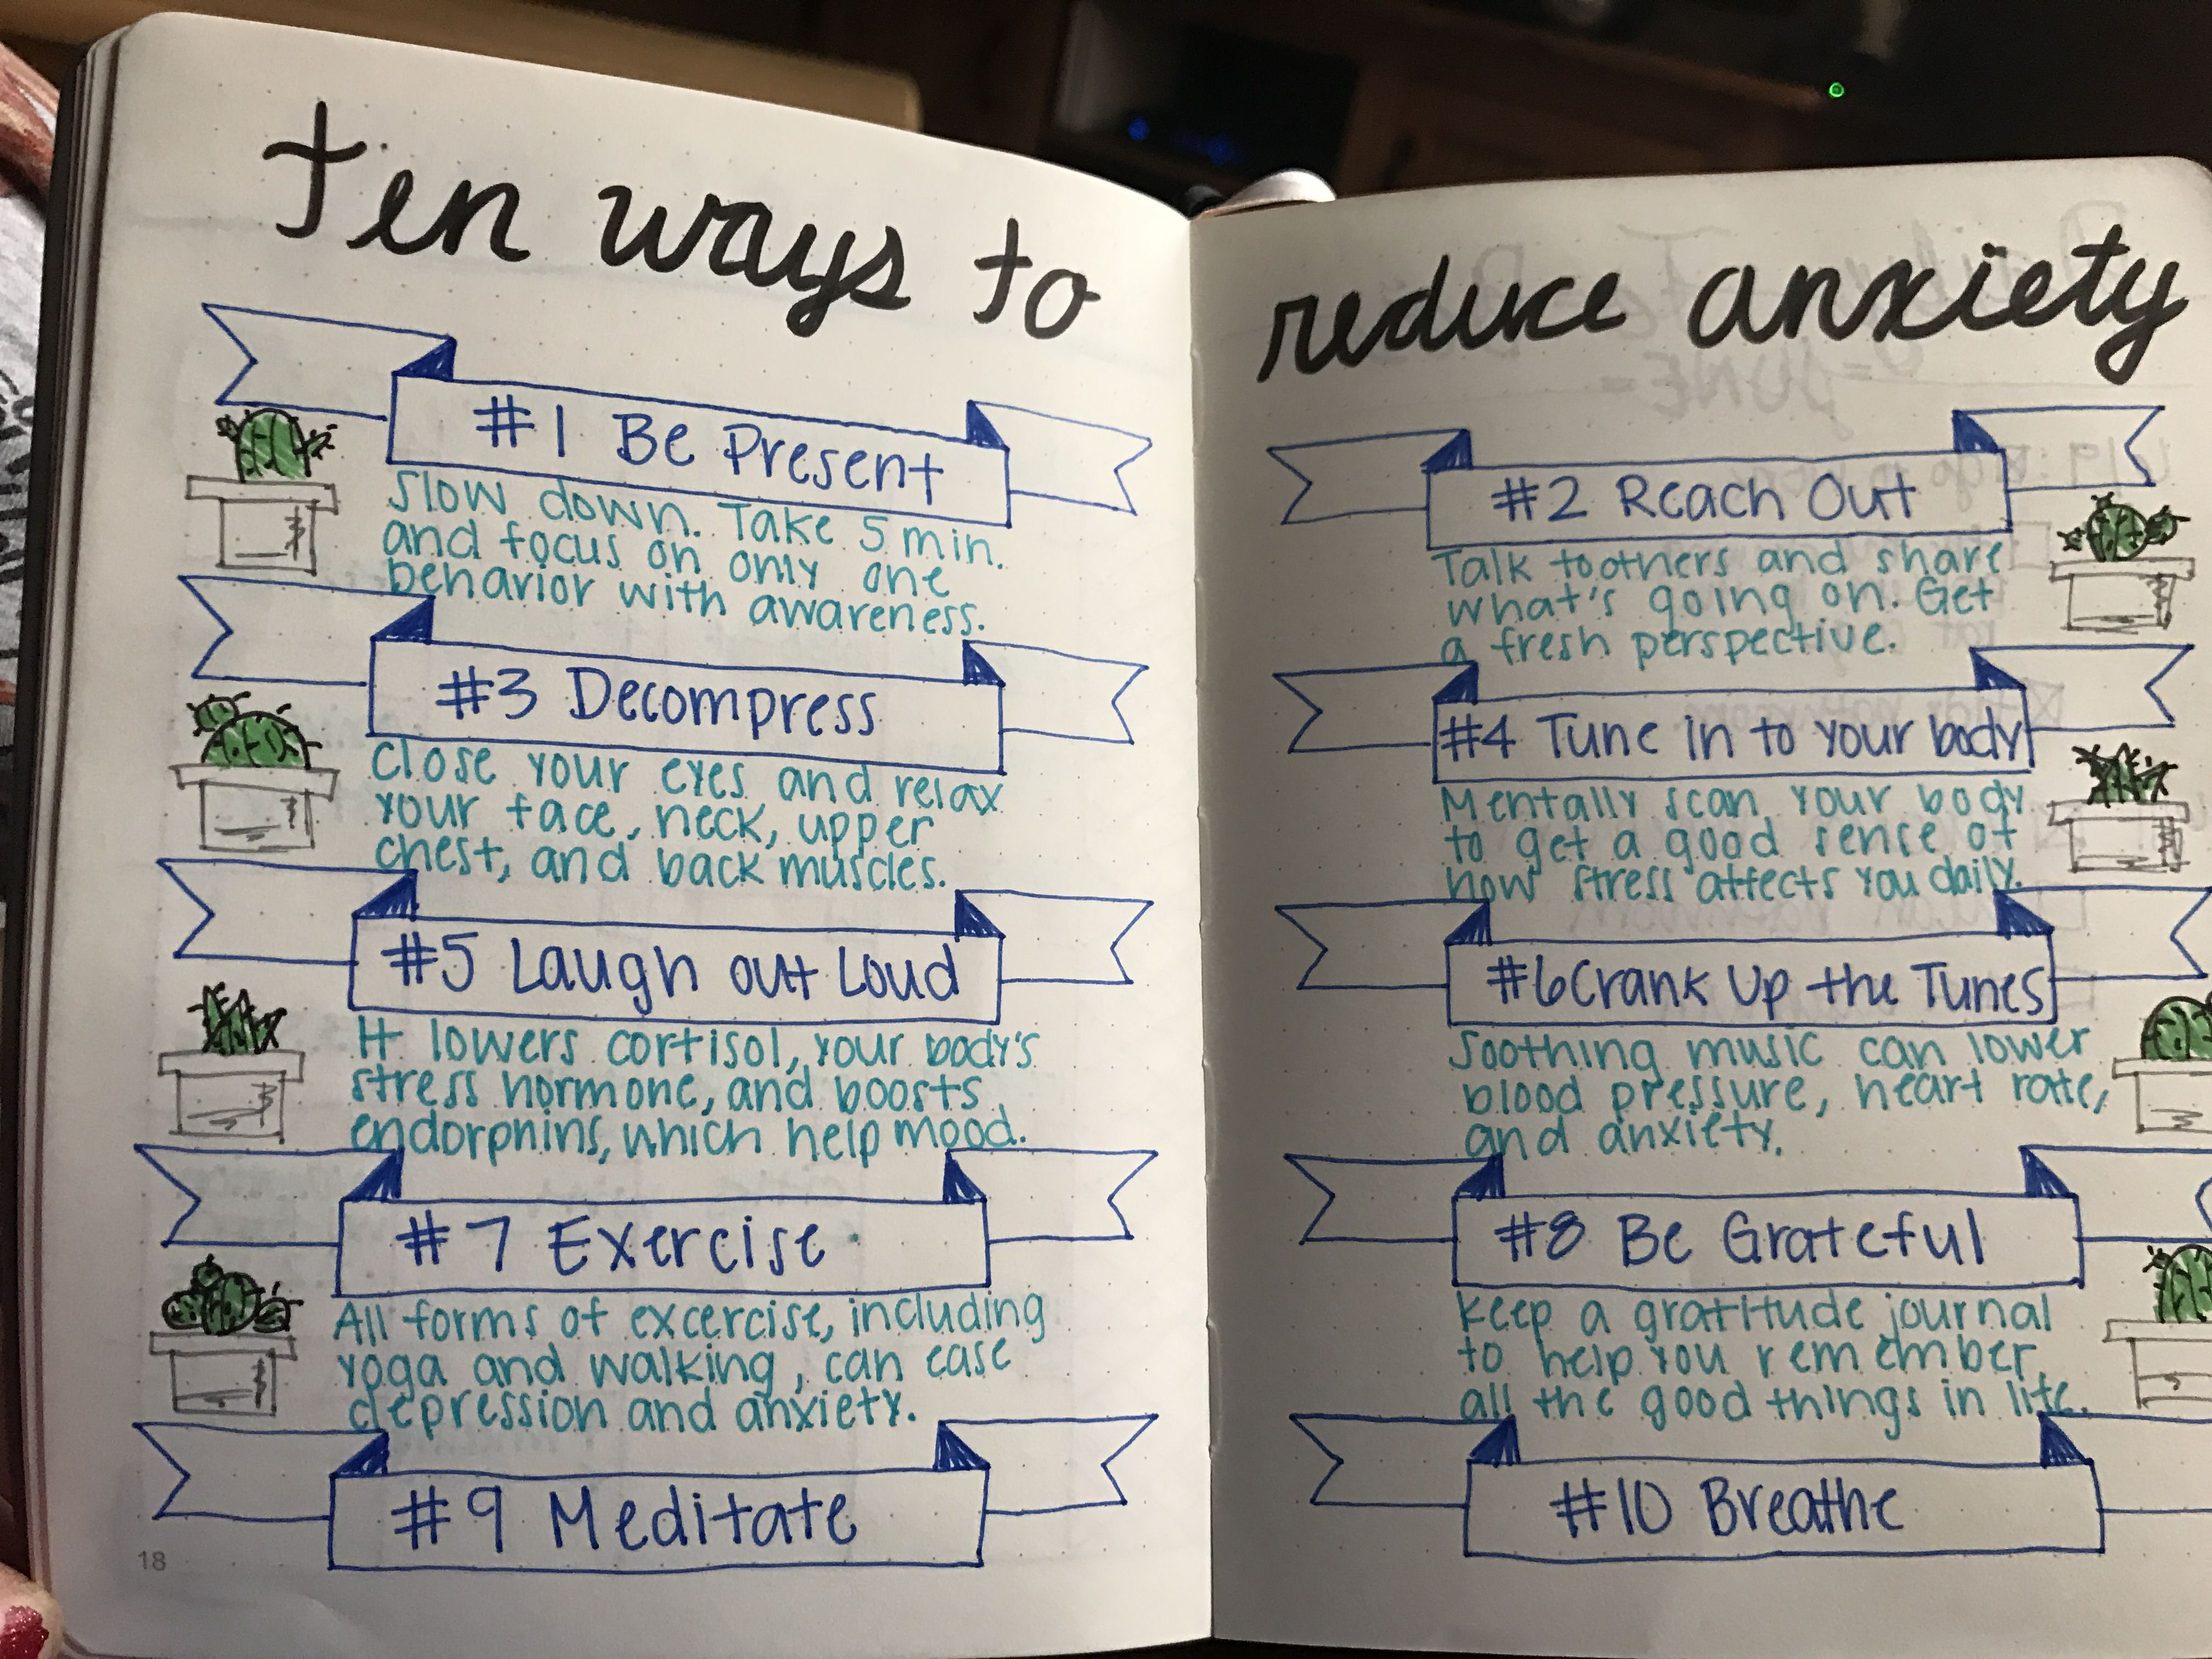 BULLET JOURNAL: ten ways to reduce anxiety | Bullet ...